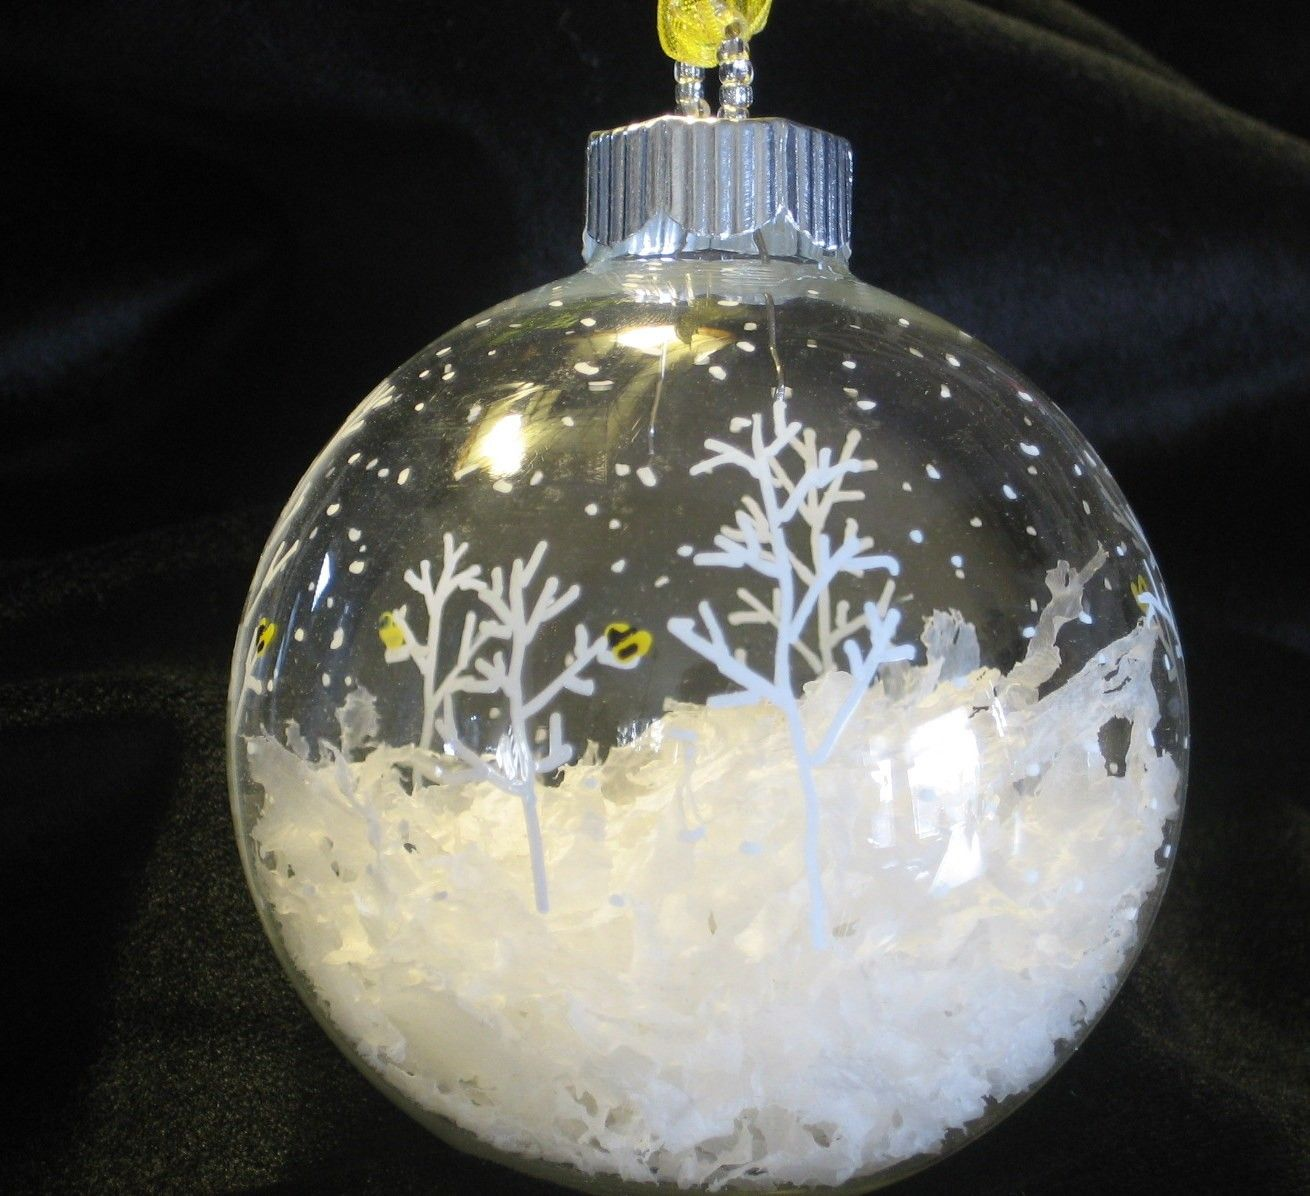 Hand Painted Glass Christmas Ball Ornament Gold Finch Snow Scene 11 00 Via Etsy Christmas Ornaments Diy Christmas Ornaments Christmas Crafts